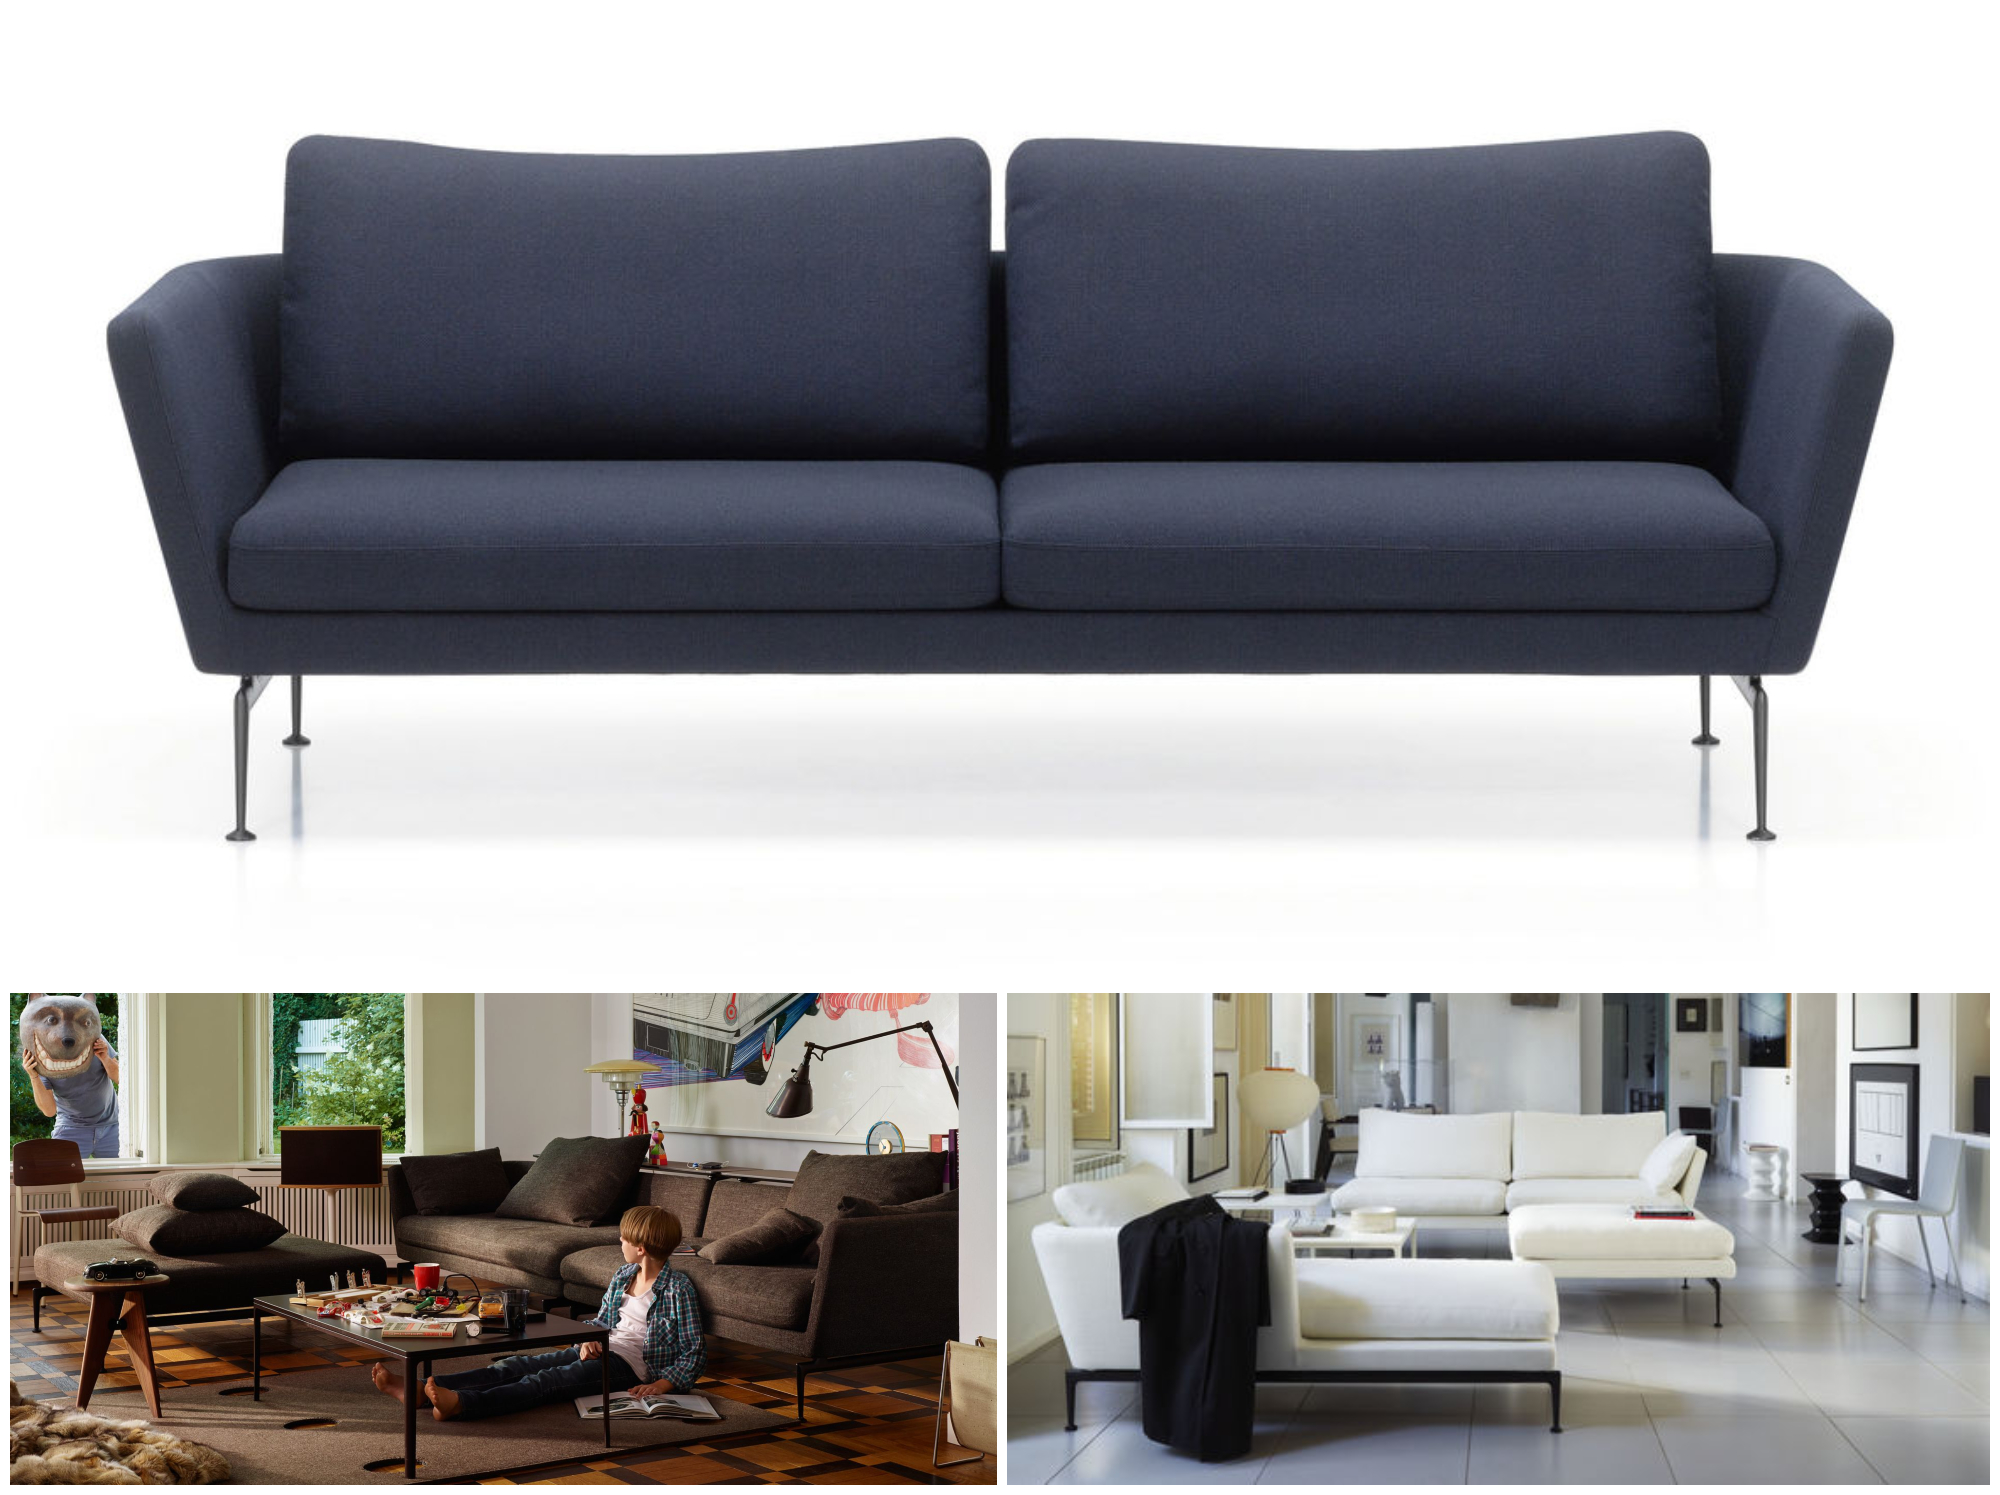 SUITA SOFA FAMILY - ANTONIO CITTERIO, 2010  CHARACTERISED BY AN ELEGANT TECHNOLOGICAL AESTHETIC, THE SUITA SOFA FAMILY COMPRISES MANY DIFFERENT COMPONENTS. THESE CAN BE USED AS INDEPENDENT ELEMENTS OR FREELY COMBINED TO ADAPT TO ALL KINDS OF INTERIOR ENVIRONMENTS AND FURNISHING NEEDS. THE SEAT AND BACK CUSHIONS ARE AVAILABLE IN FIRM OR SOFT VERSIONS. THE GEOMETRICALLY PRECISE BODY AND CUSHIONS SEEM TO FLOAT ABOVE THE SLEEK, BRIDGE-LIKE ALUMINIUM LEGS, WHICH CAN BE SEEN AS A TRIBUTE TO MID-CENTURY AMERICAN DESIGN.